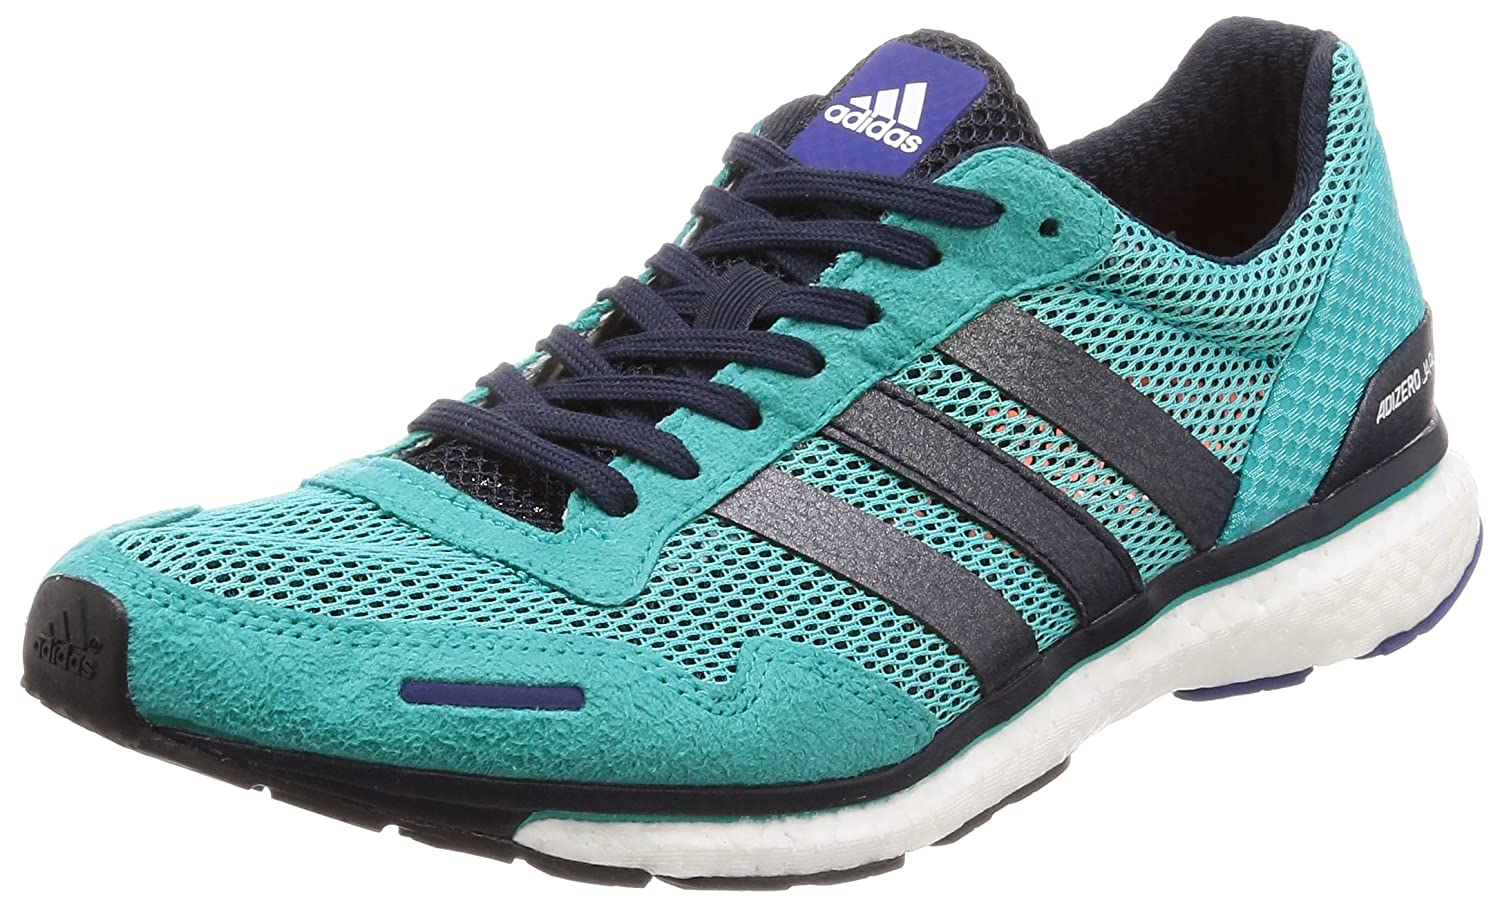 81c2220173d47 adidas Men s Adizero Adios 3 M Running Shoes Blue  Amazon.co.uk  Shoes    Bags